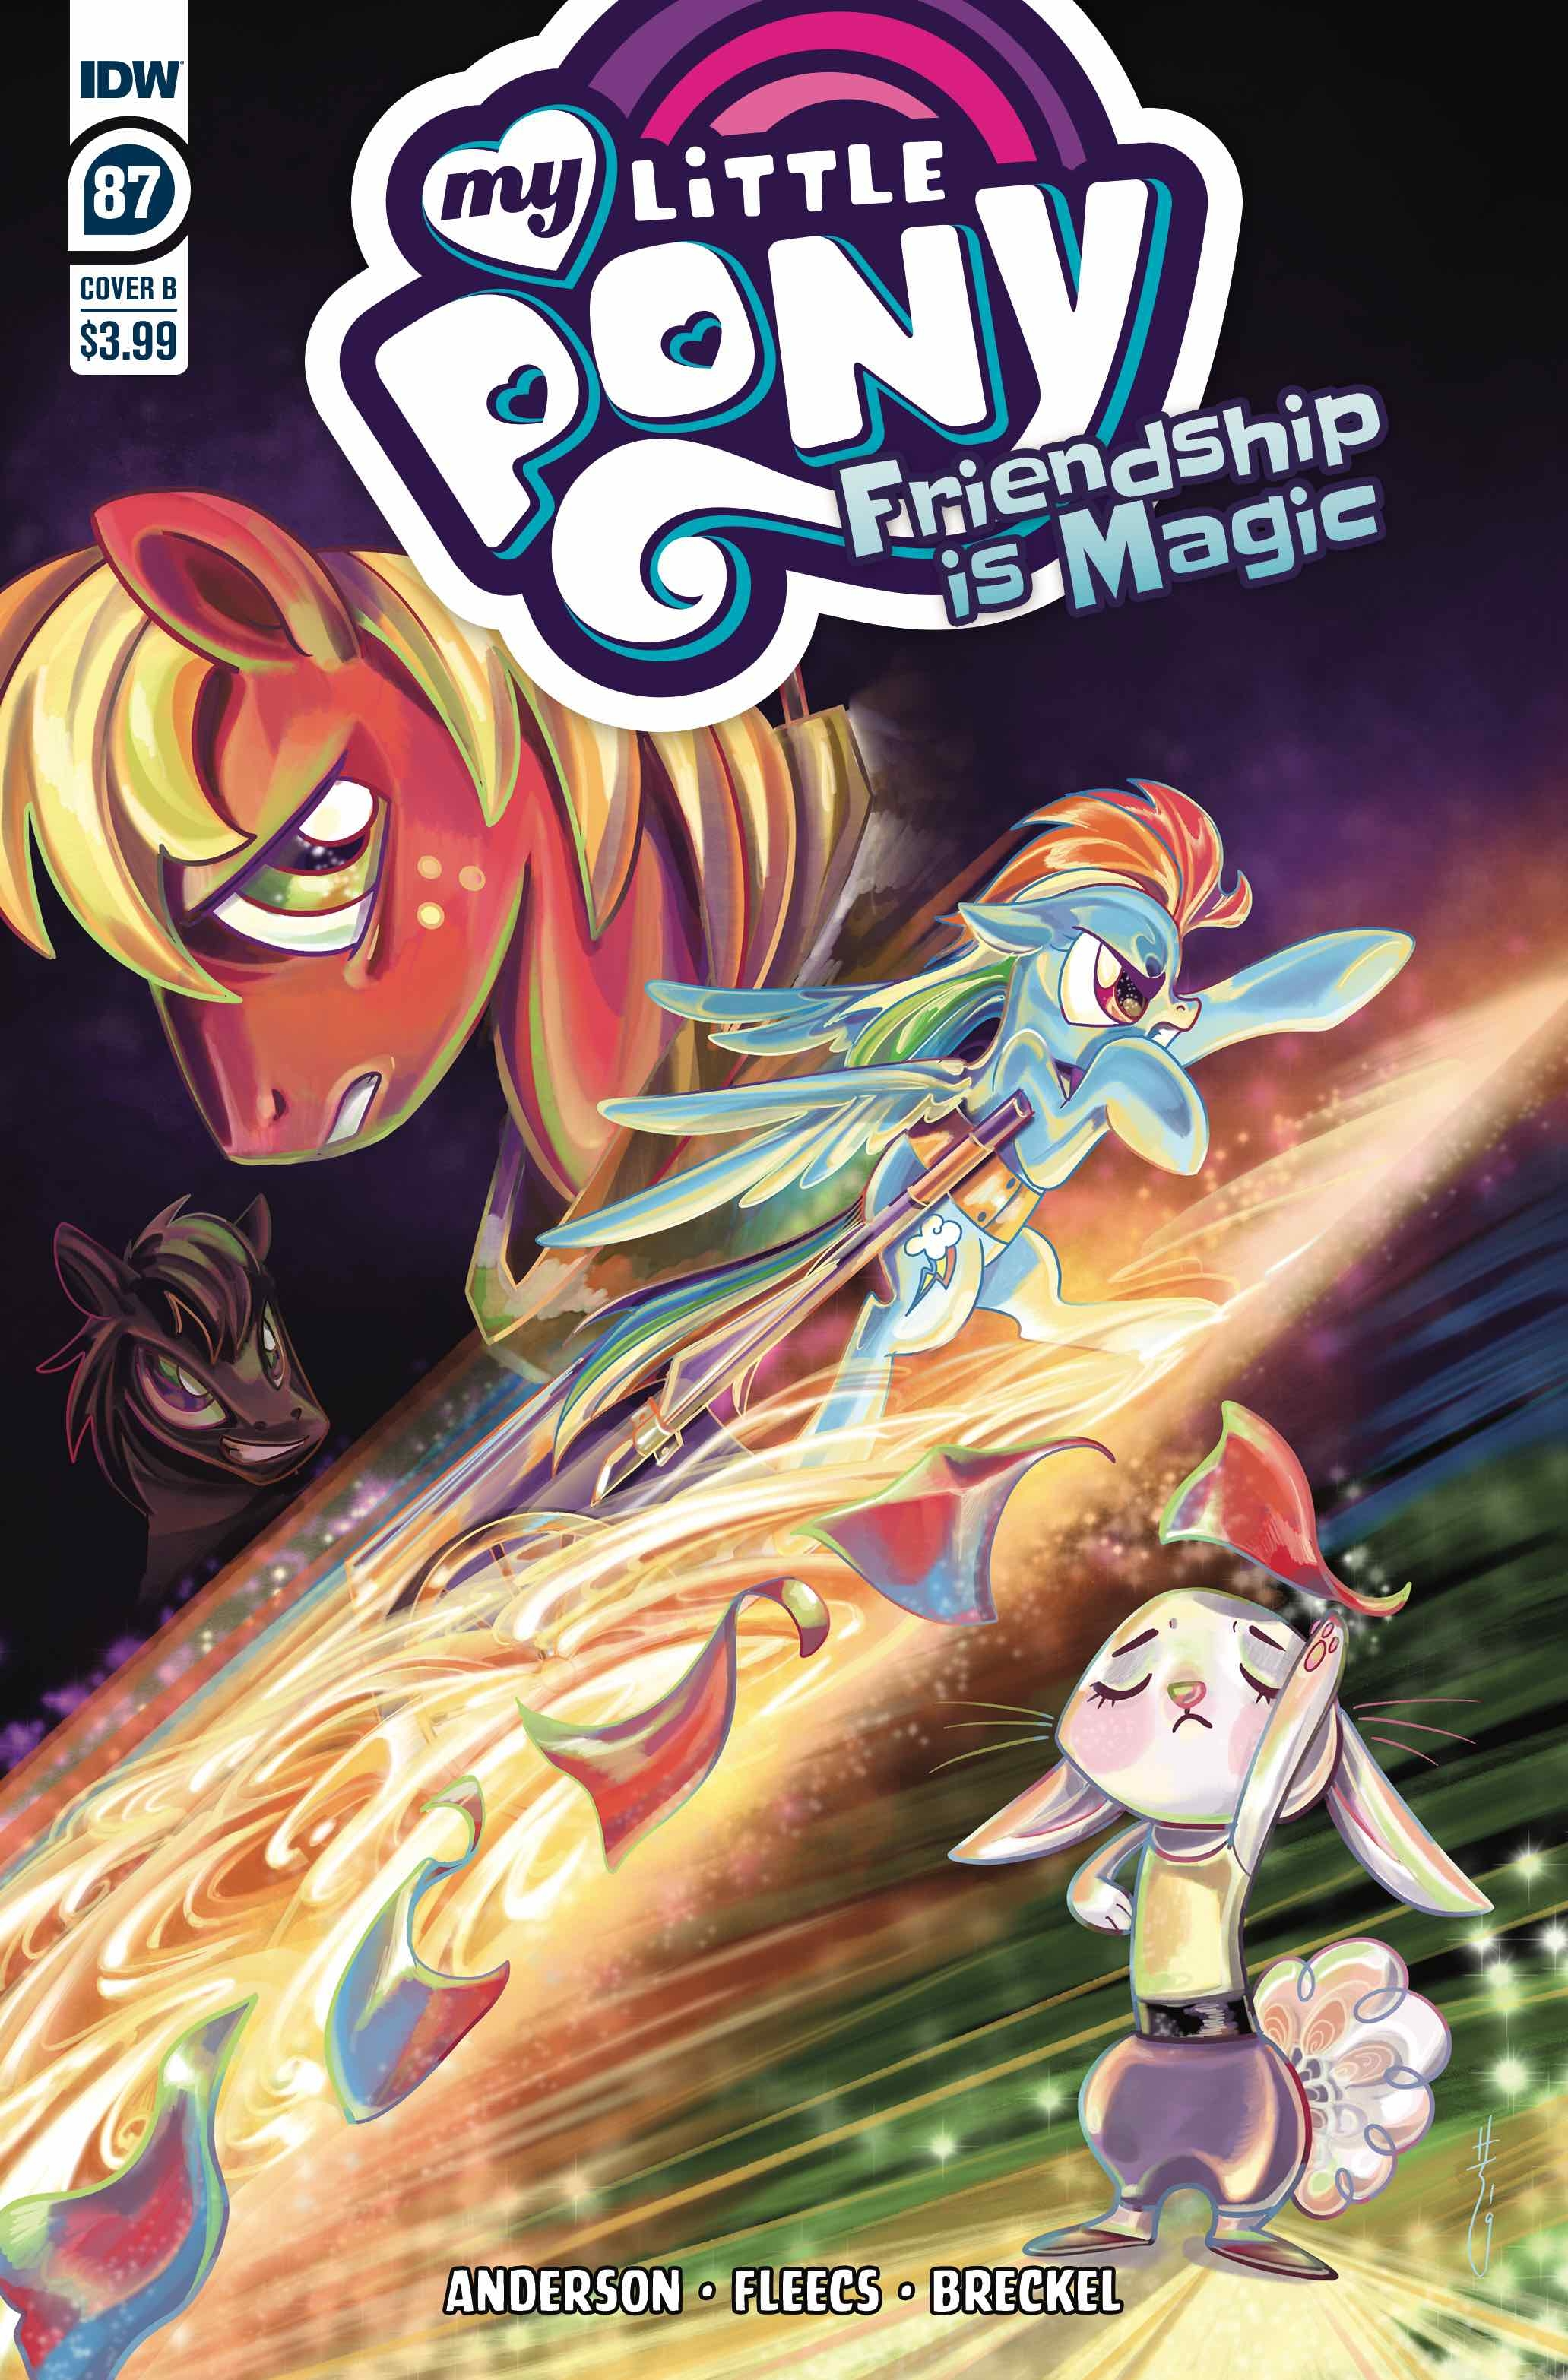 MY LITTLE PONY FRIENDSHIP IS MAGIC #87 CVR B RICHARD